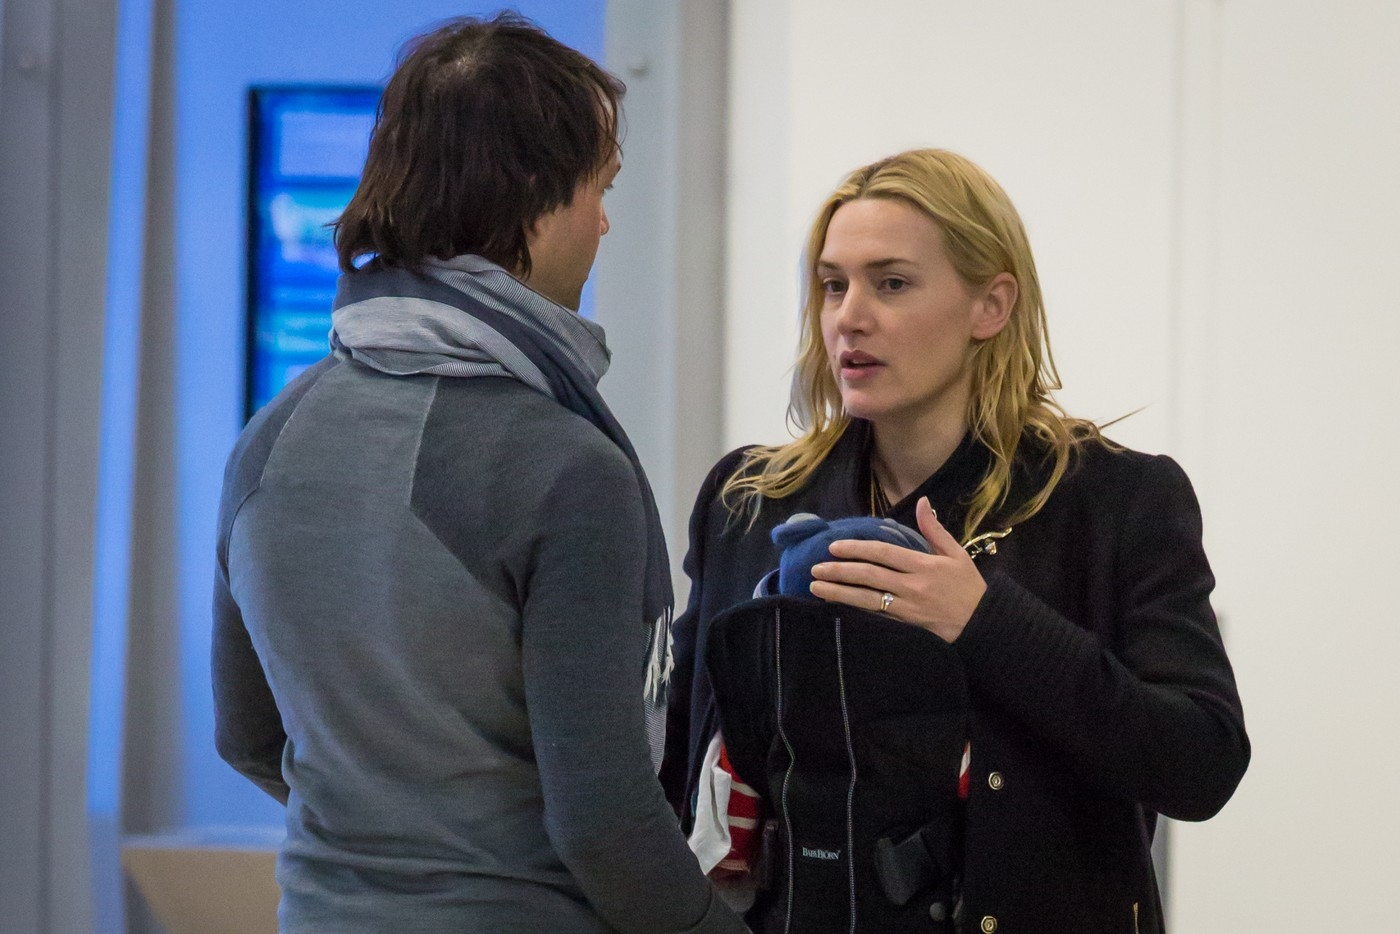 EXCLUSIVE Kate Winslet and husband Ned Rocknroll arrive at Newark Liberty International Airport